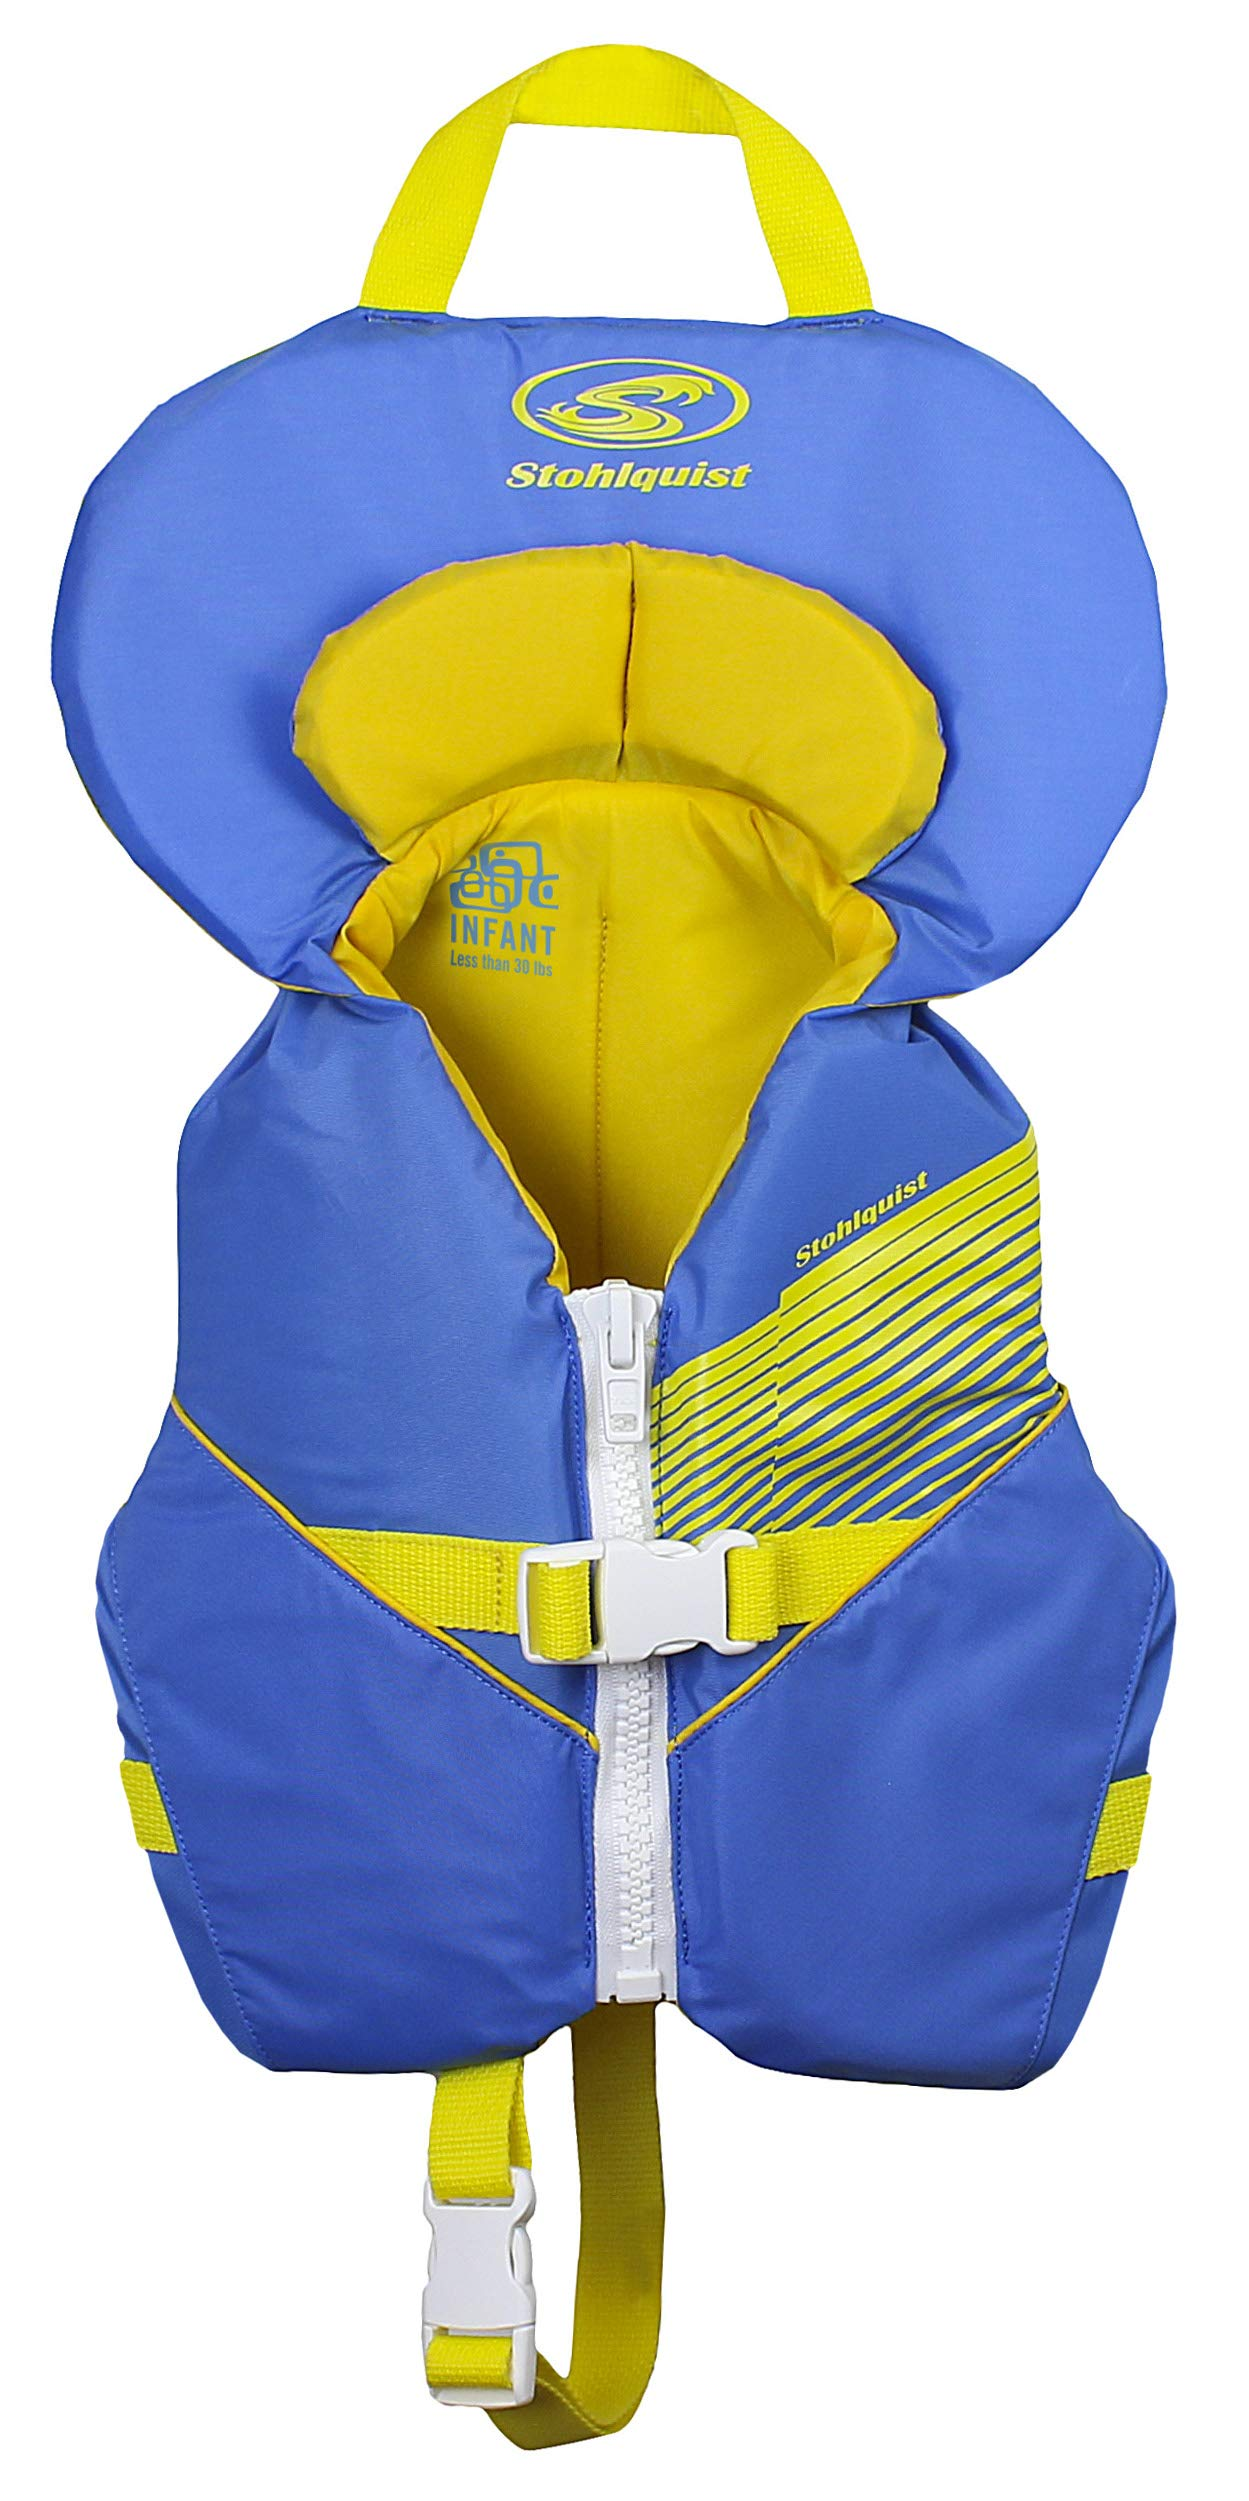 Stohlquist Waterware Toddler Life Jacket Coast Guard Approved Life Vest for Infants, Blue/Yellow, 8-30 Pounds